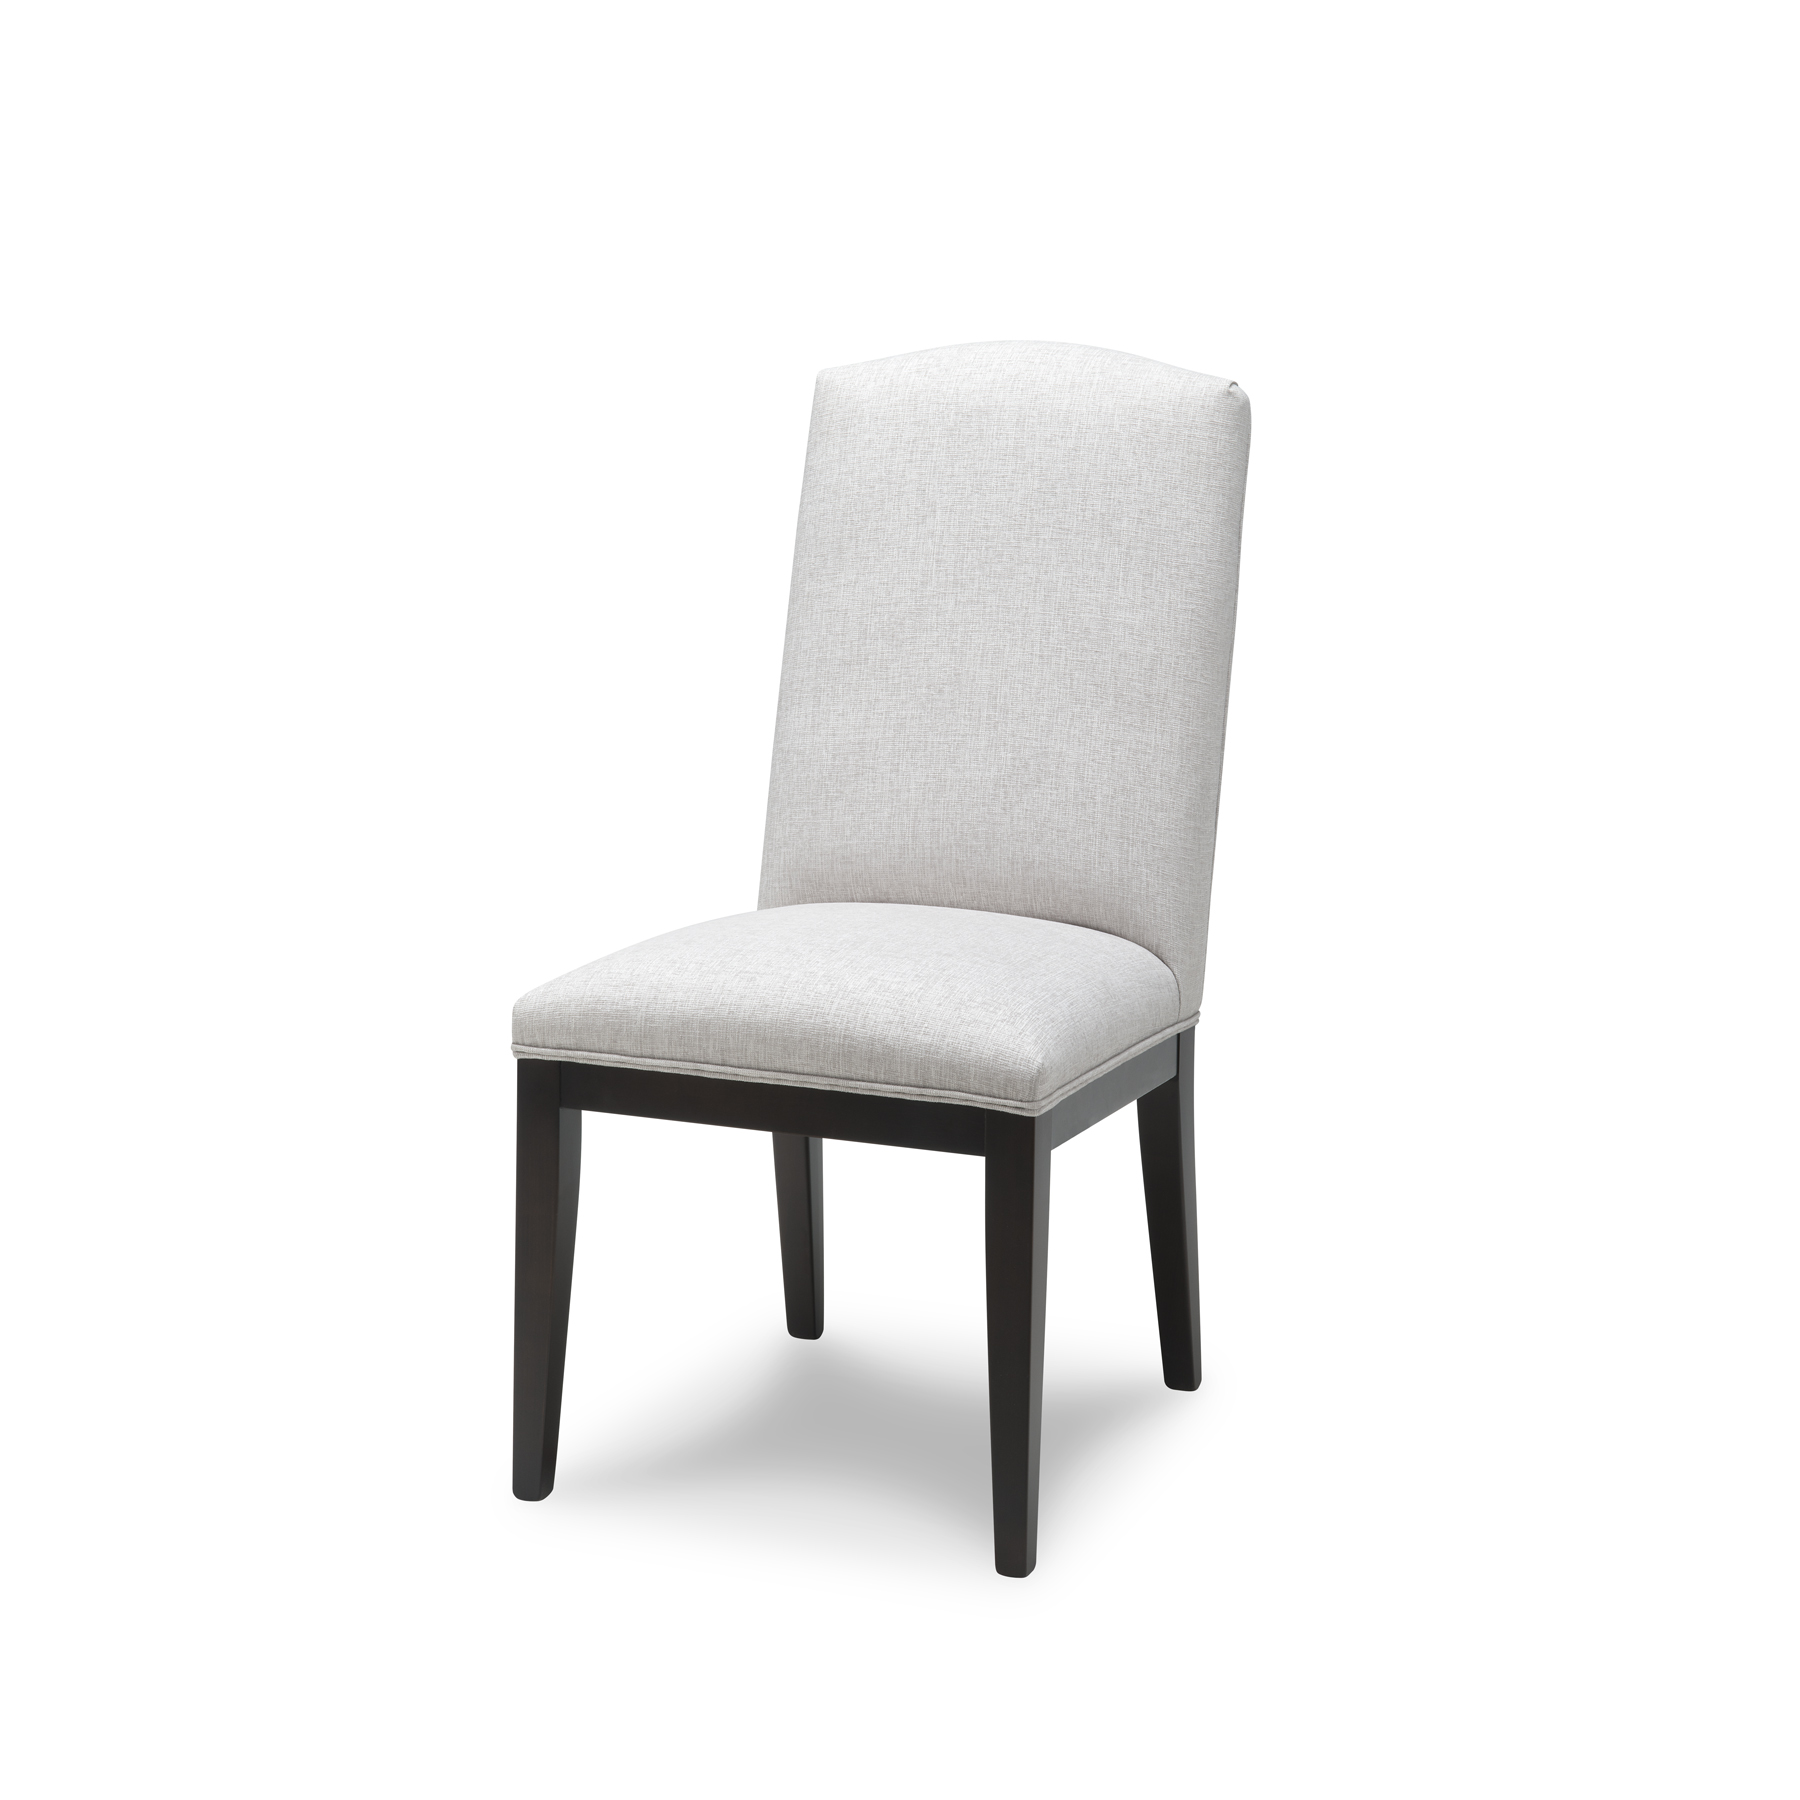 Stewart-Chair-D-PROOF-3-1.jpg